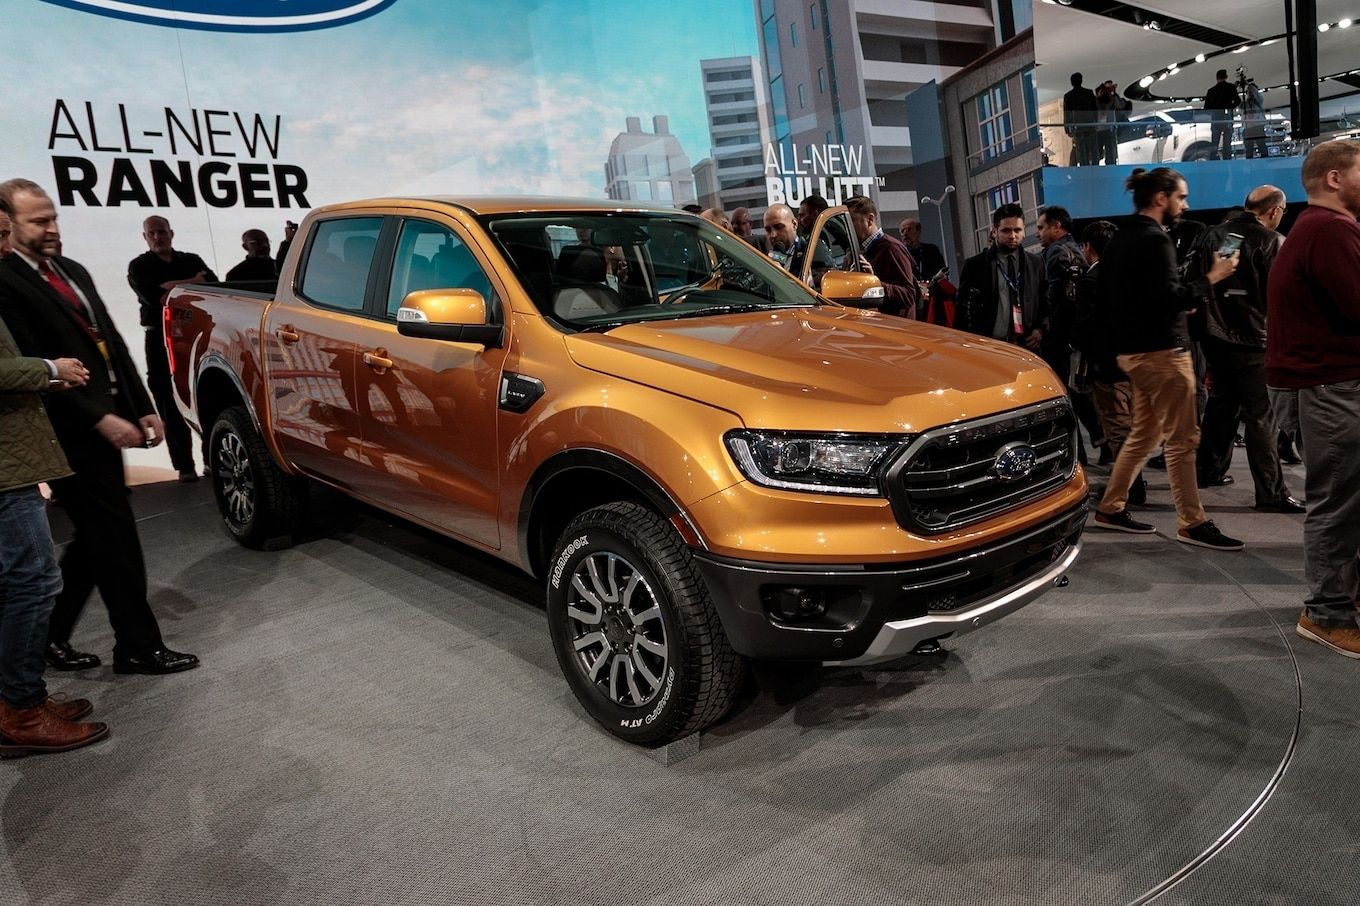 12 Insanely Beautiful 2019 Ford Ranger Dimensions Ford Ranger 2019 Ford Ranger Ford Ranger Models